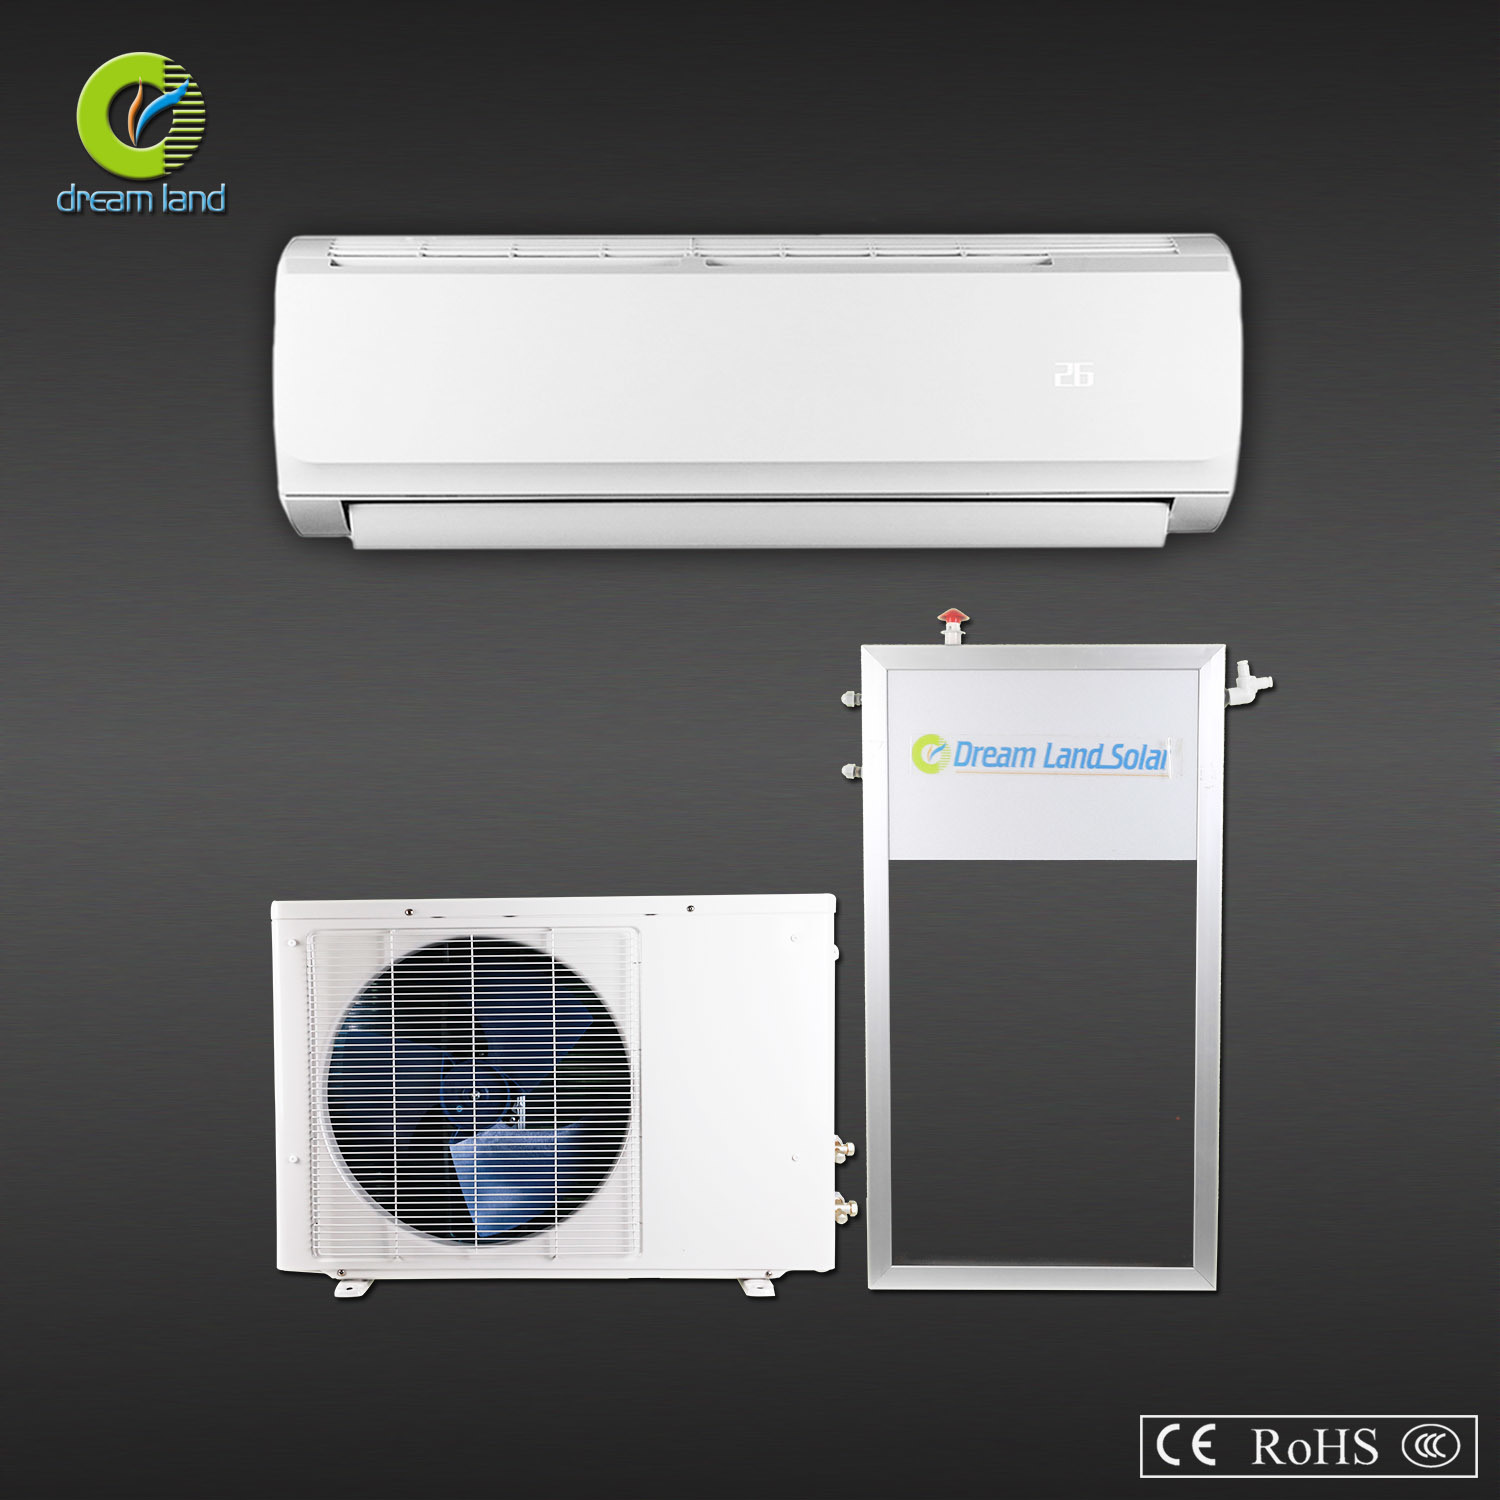 Flat Wall Mount Air Conditioners for Pinterest #8CB714